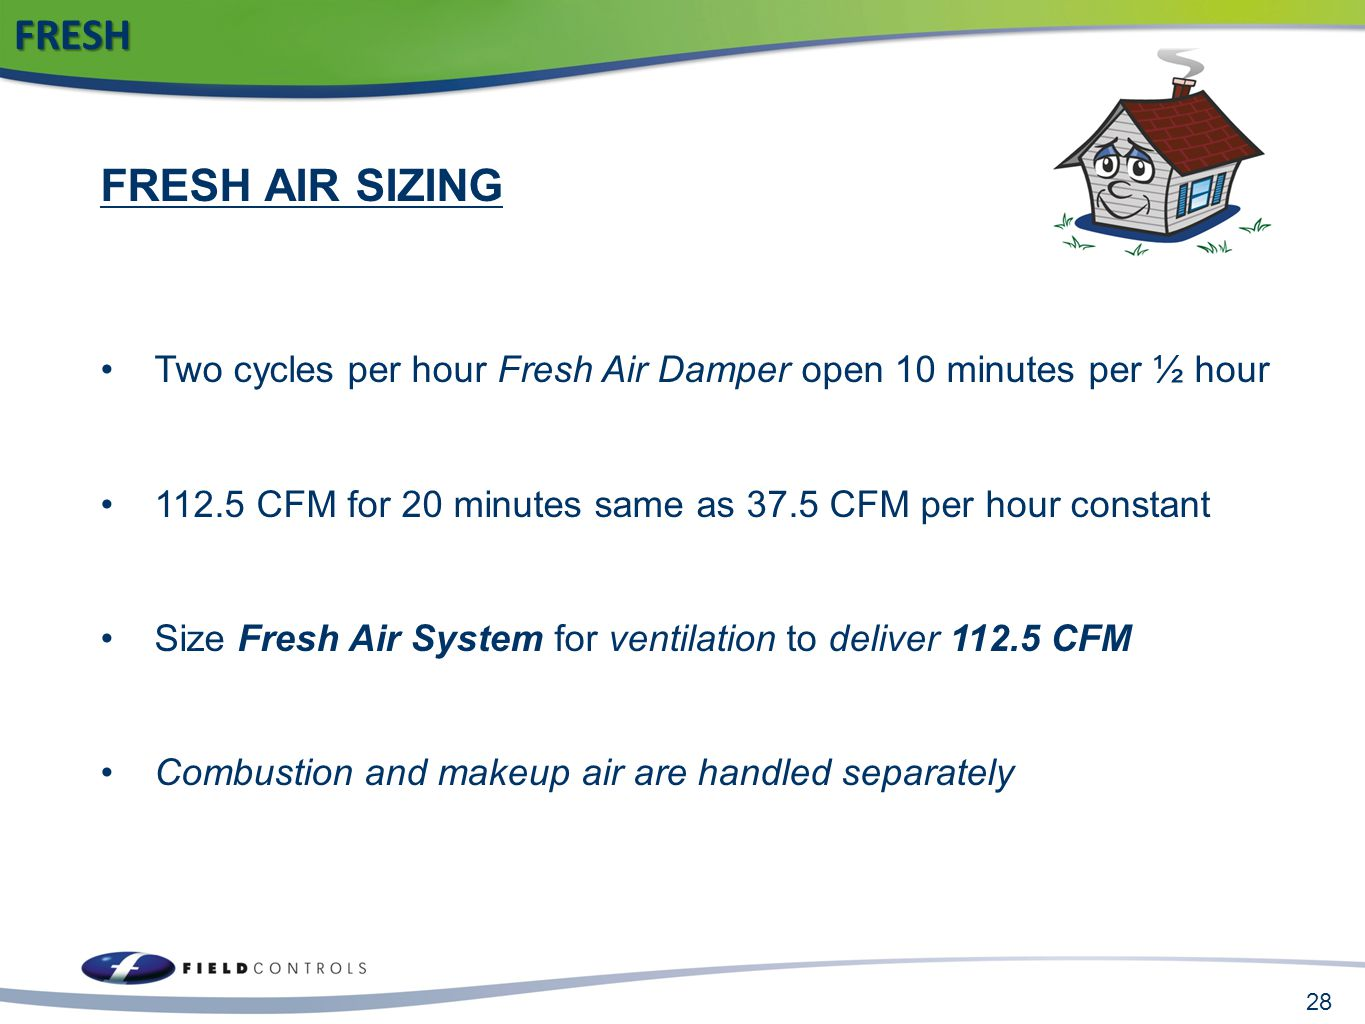 28FRESH FRESH AIR SIZING Two cycles per hour Fresh Air Damper open 10 minutes per ½ hour 112.5 CFM for 20 minutes same as 37.5 CFM per hour constant S